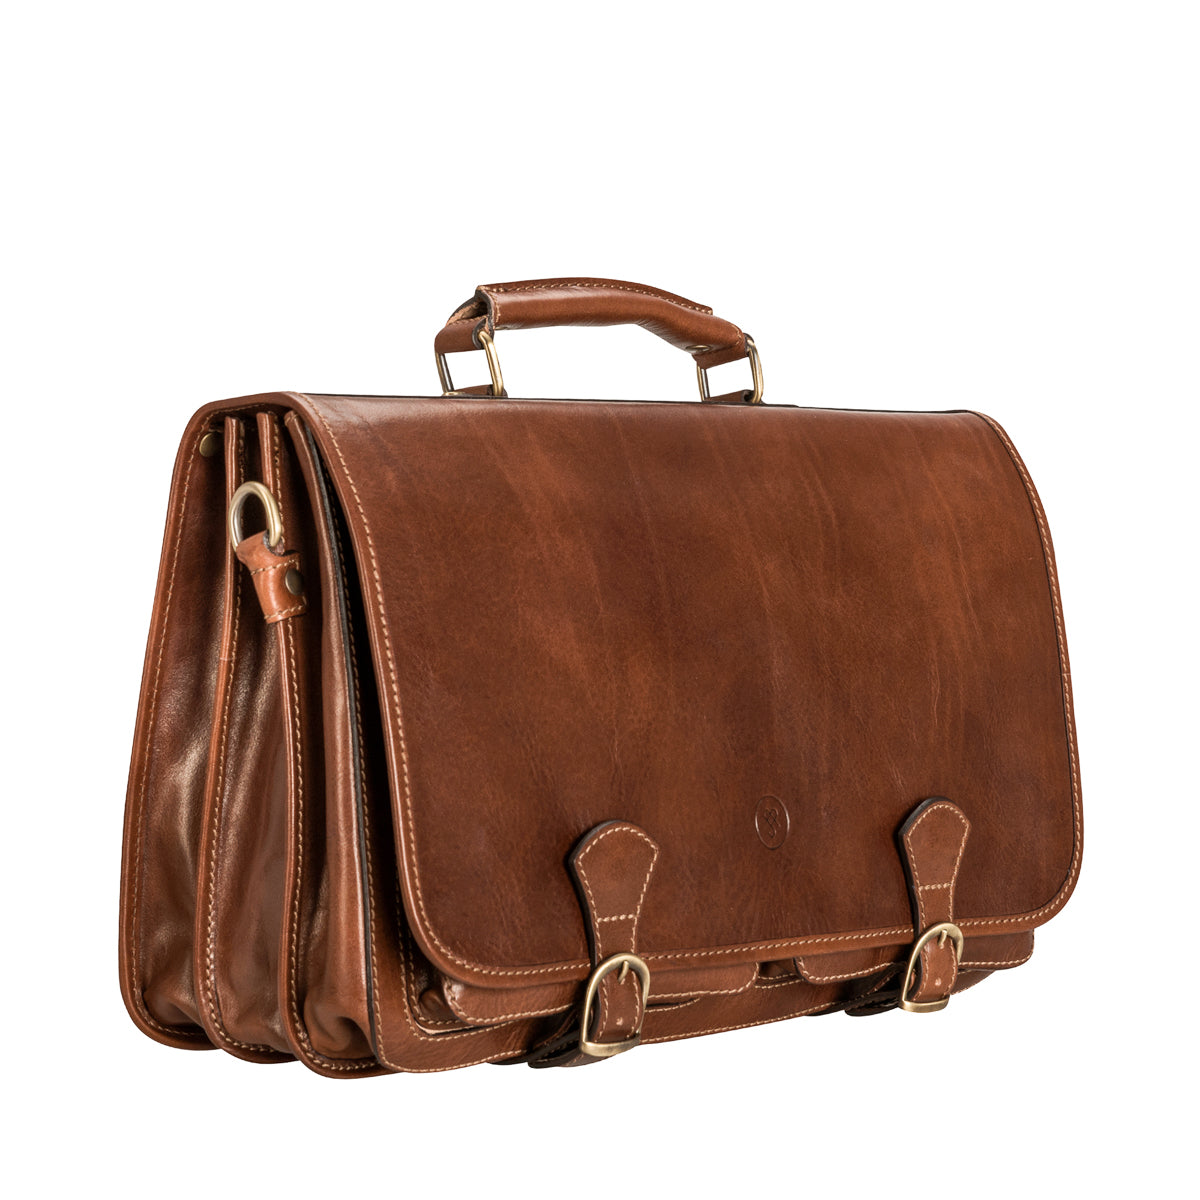 Image 2 of the 'Jesolo Tre' Chestnut Veg-Tanned Leather Satchel